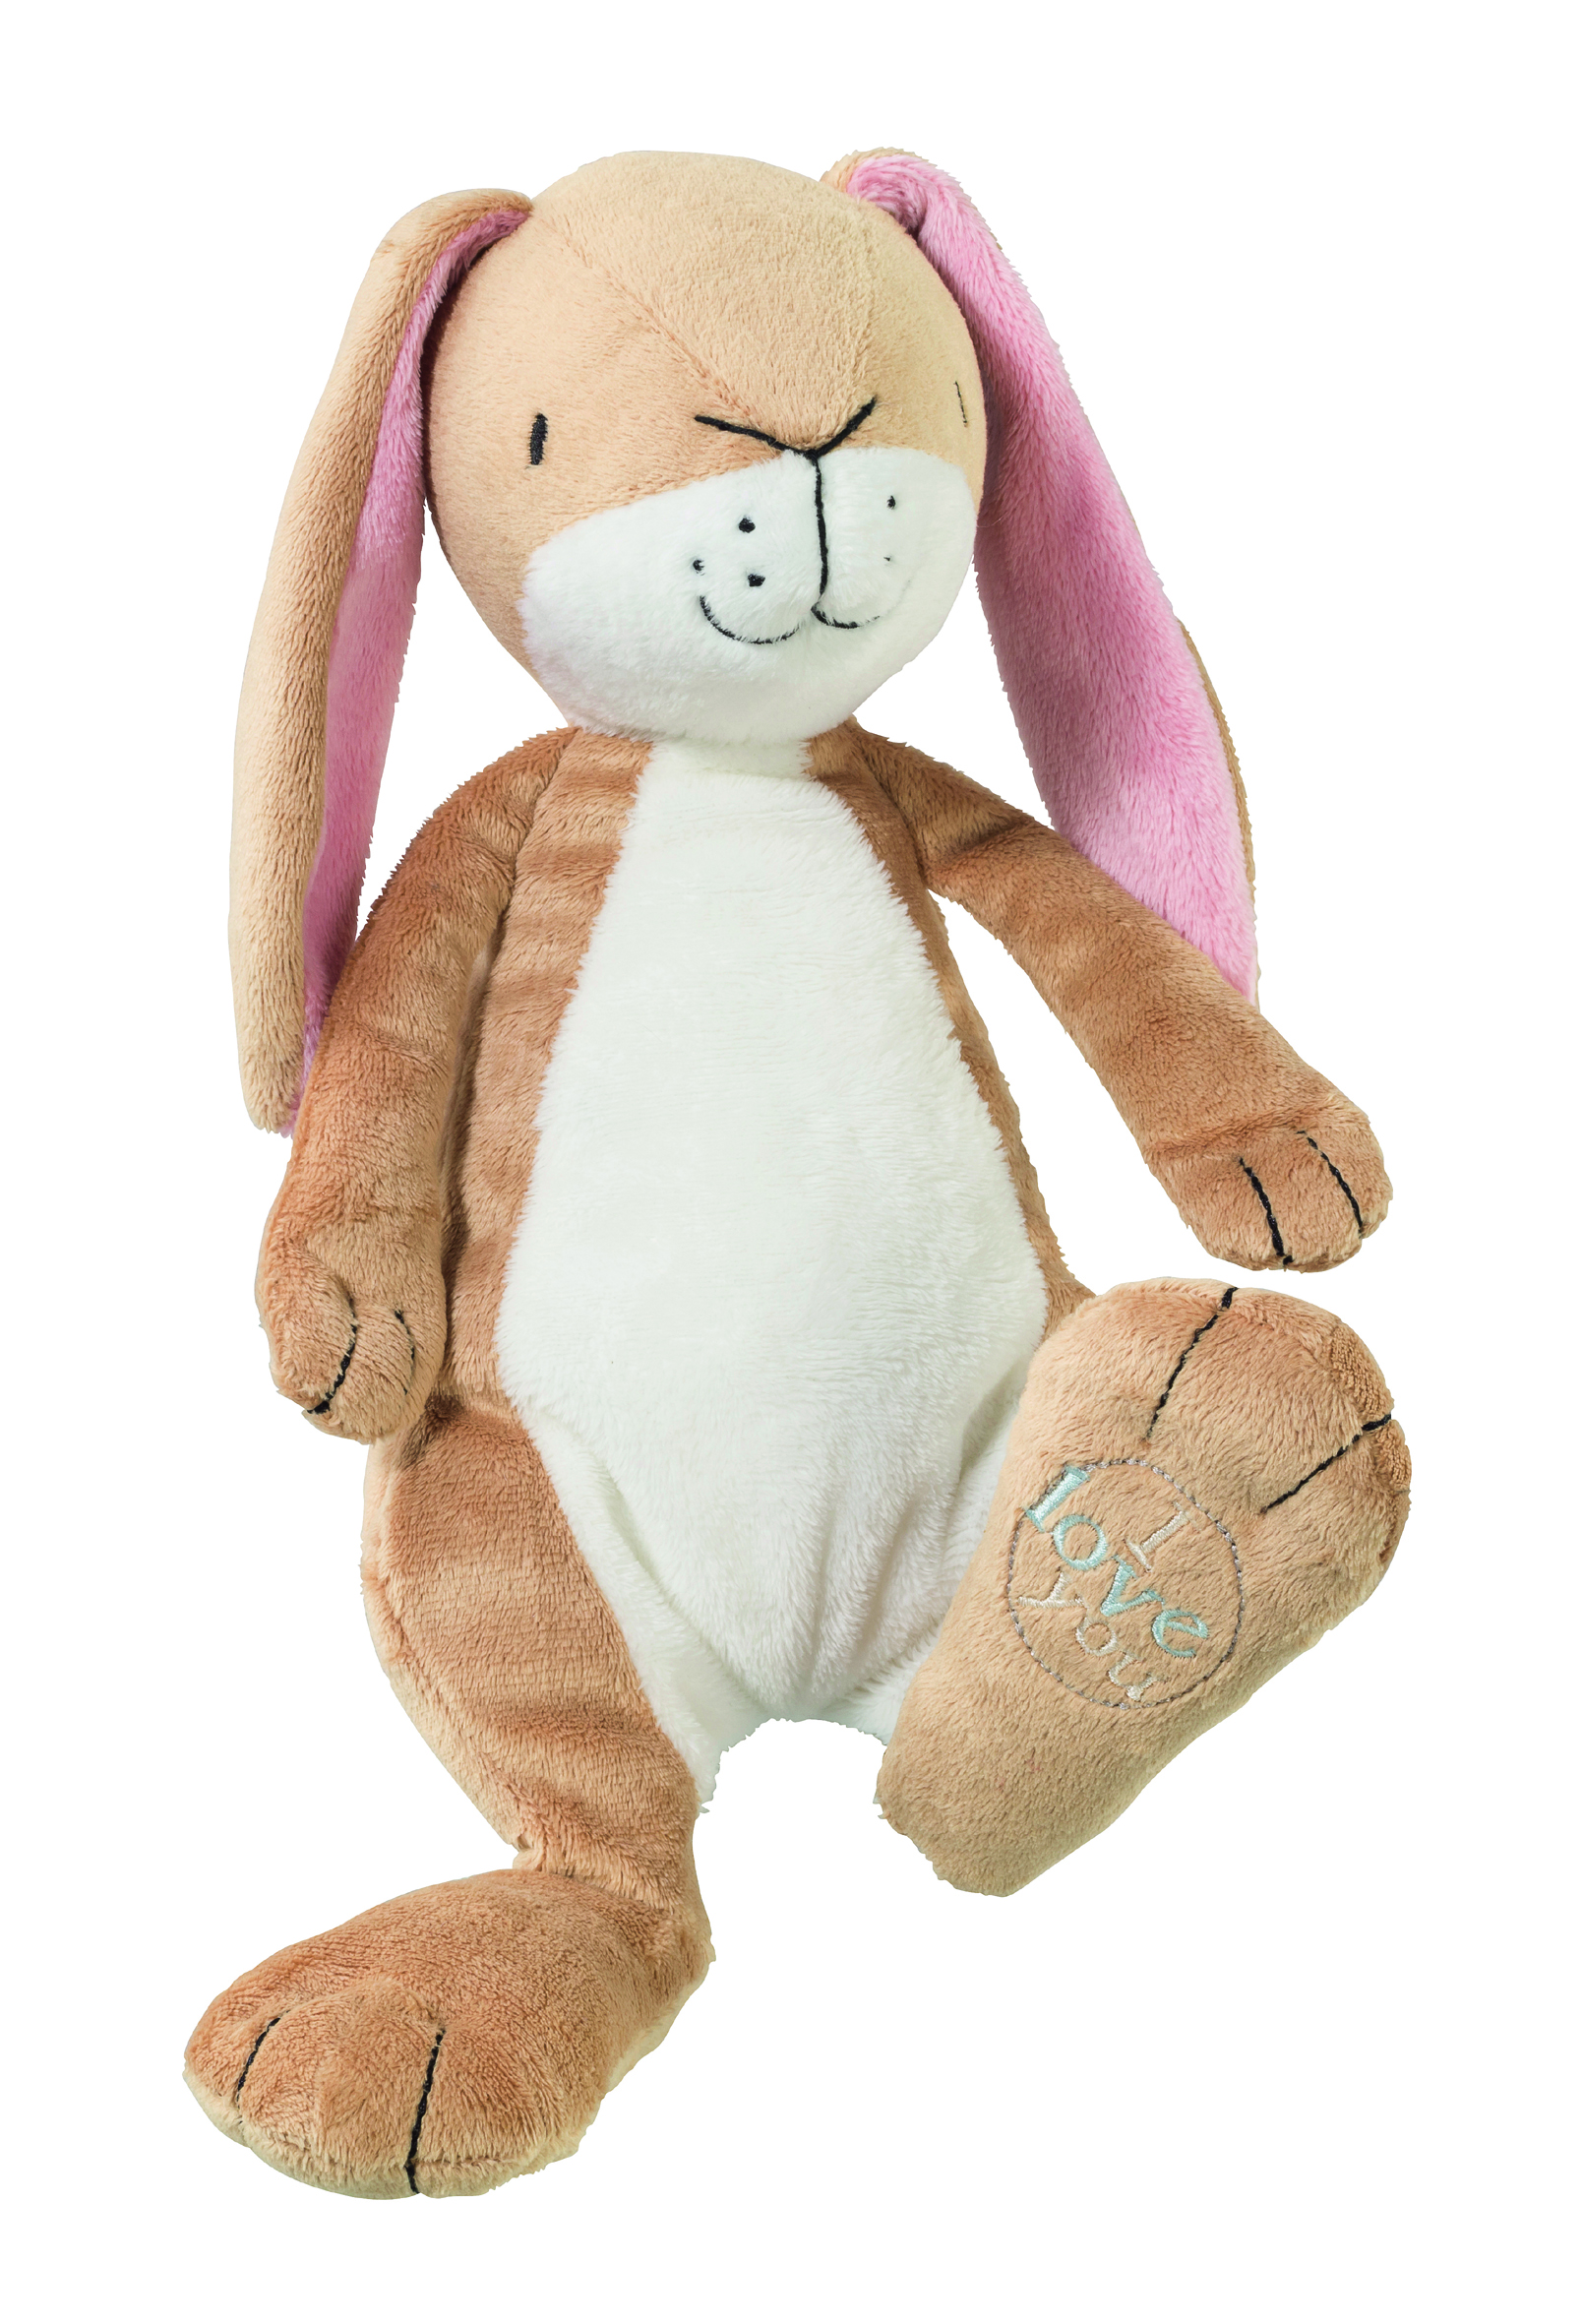 GH1208 GHMILY NUtbrown Hare Plush With Swing Tag v2